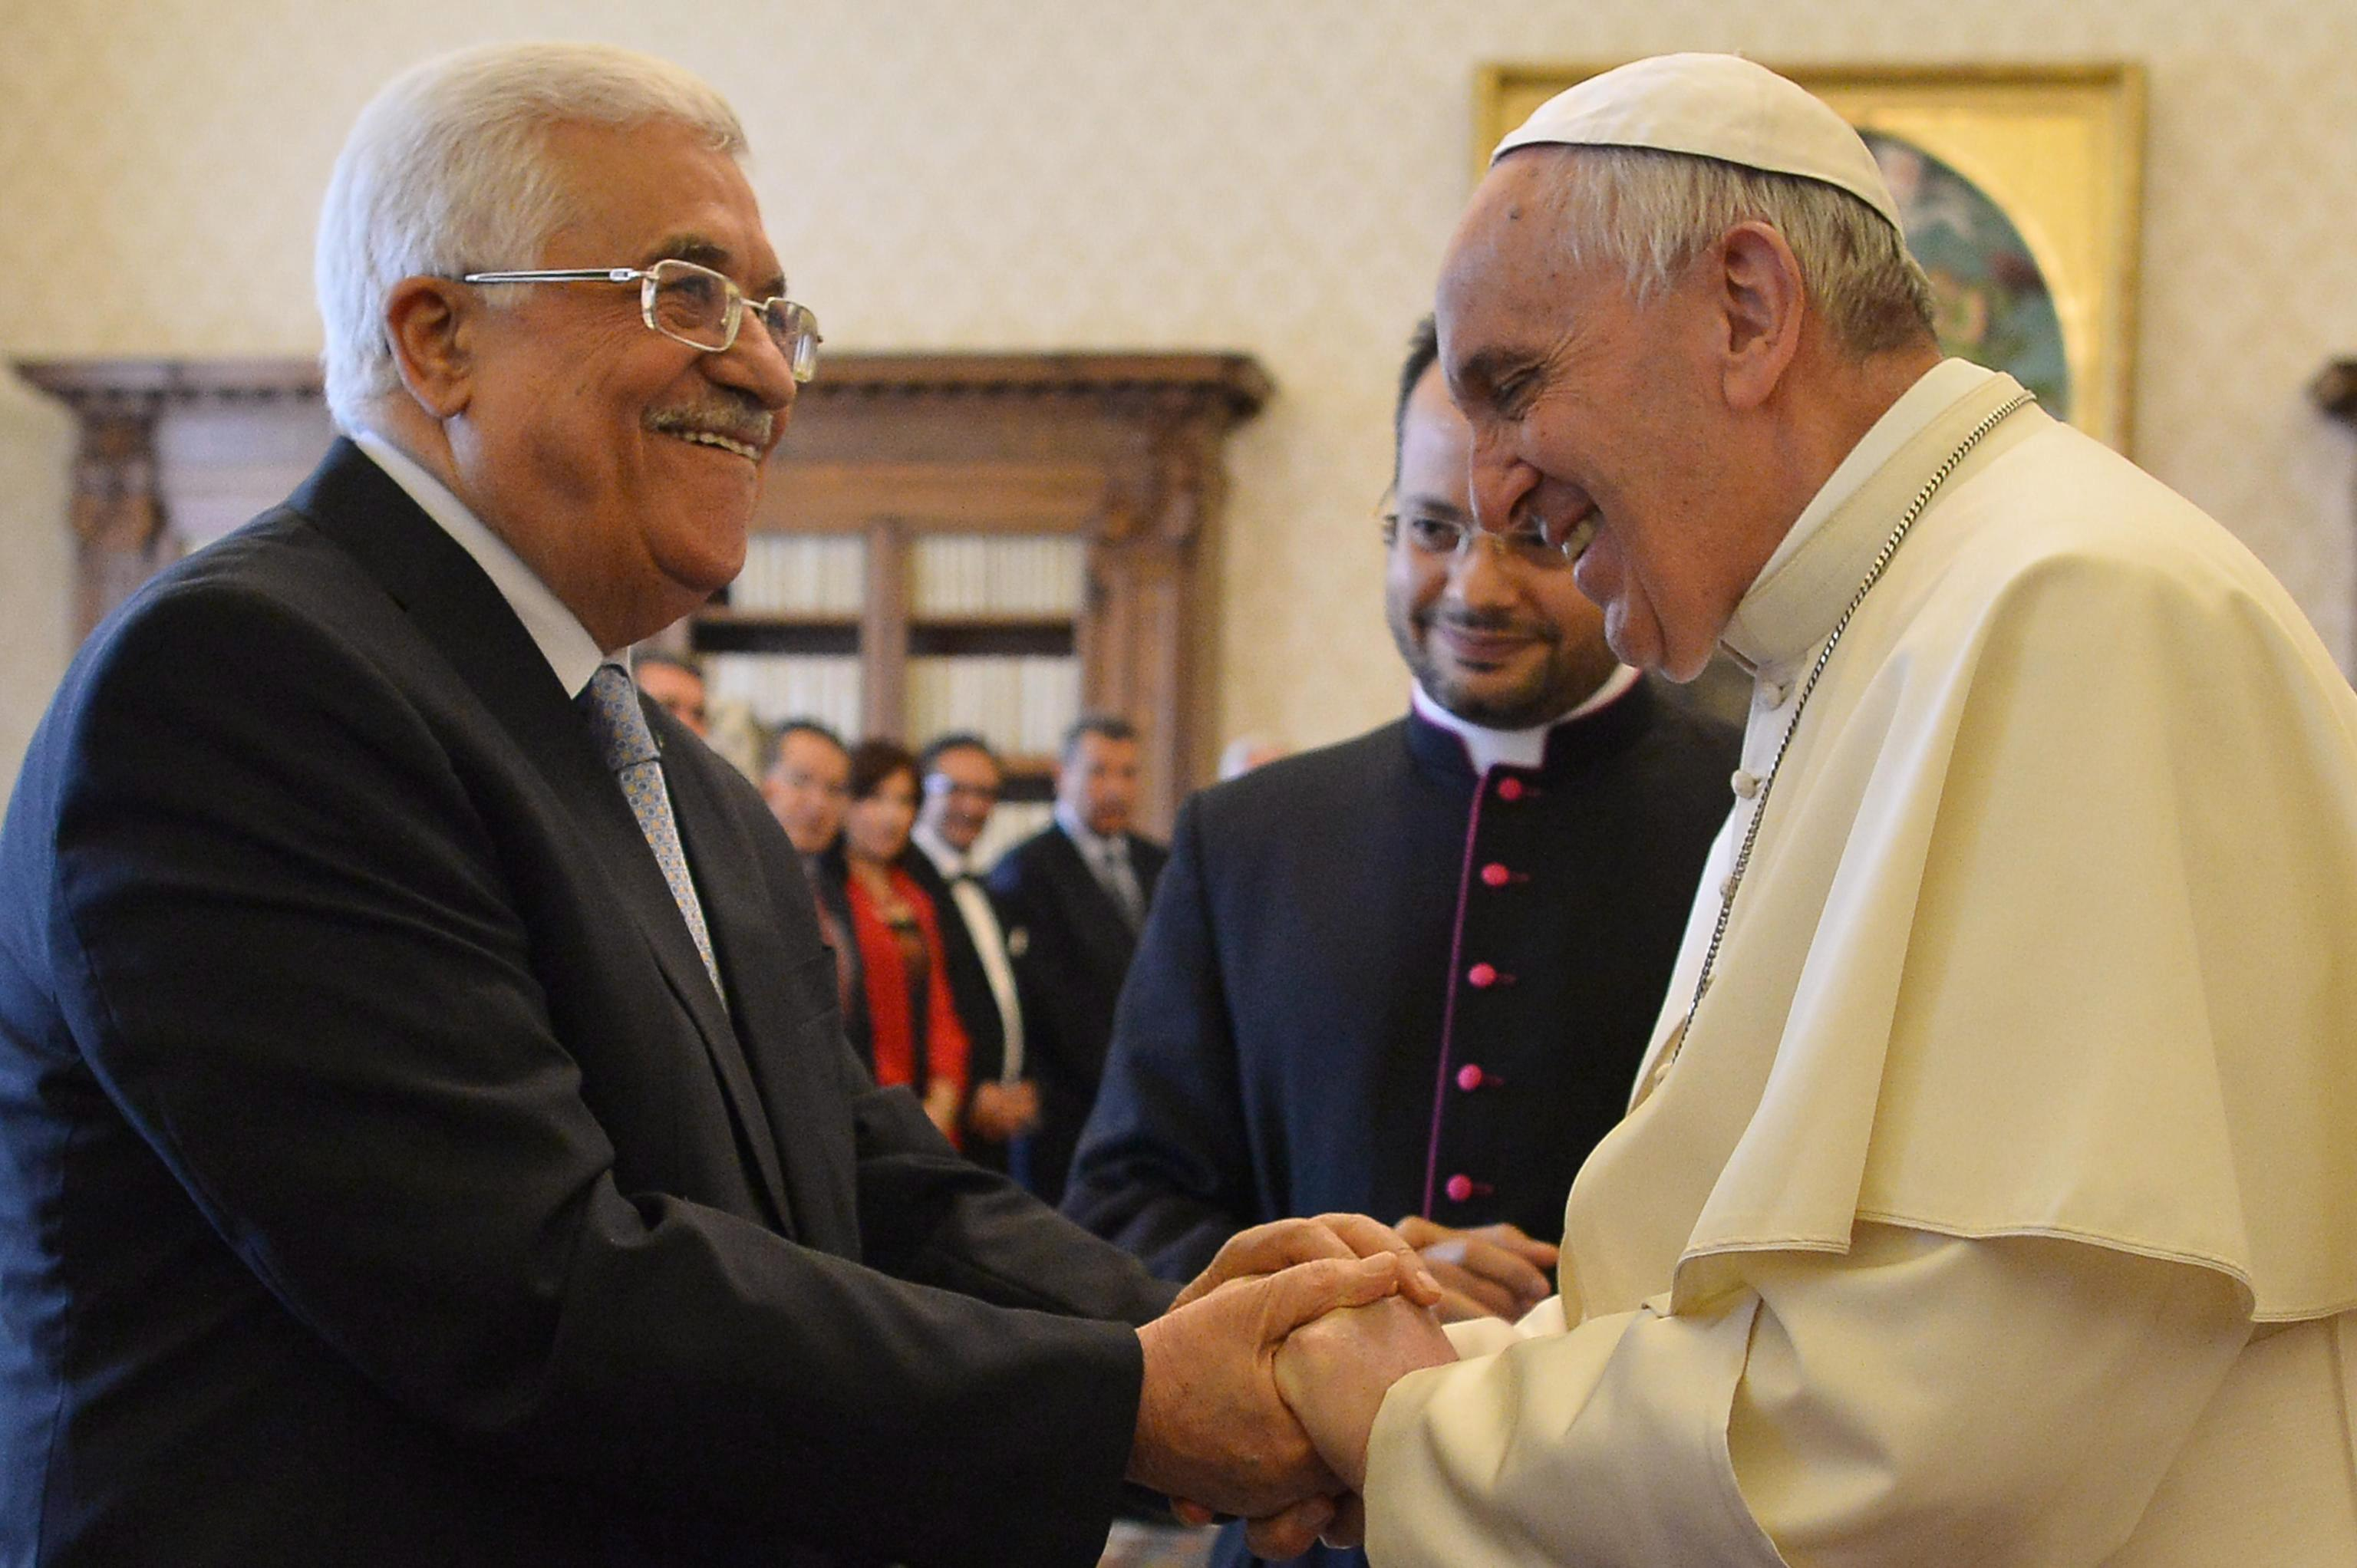 Pope Francis exchanges gifts with Palestinian authority President Mahmoud Abbas